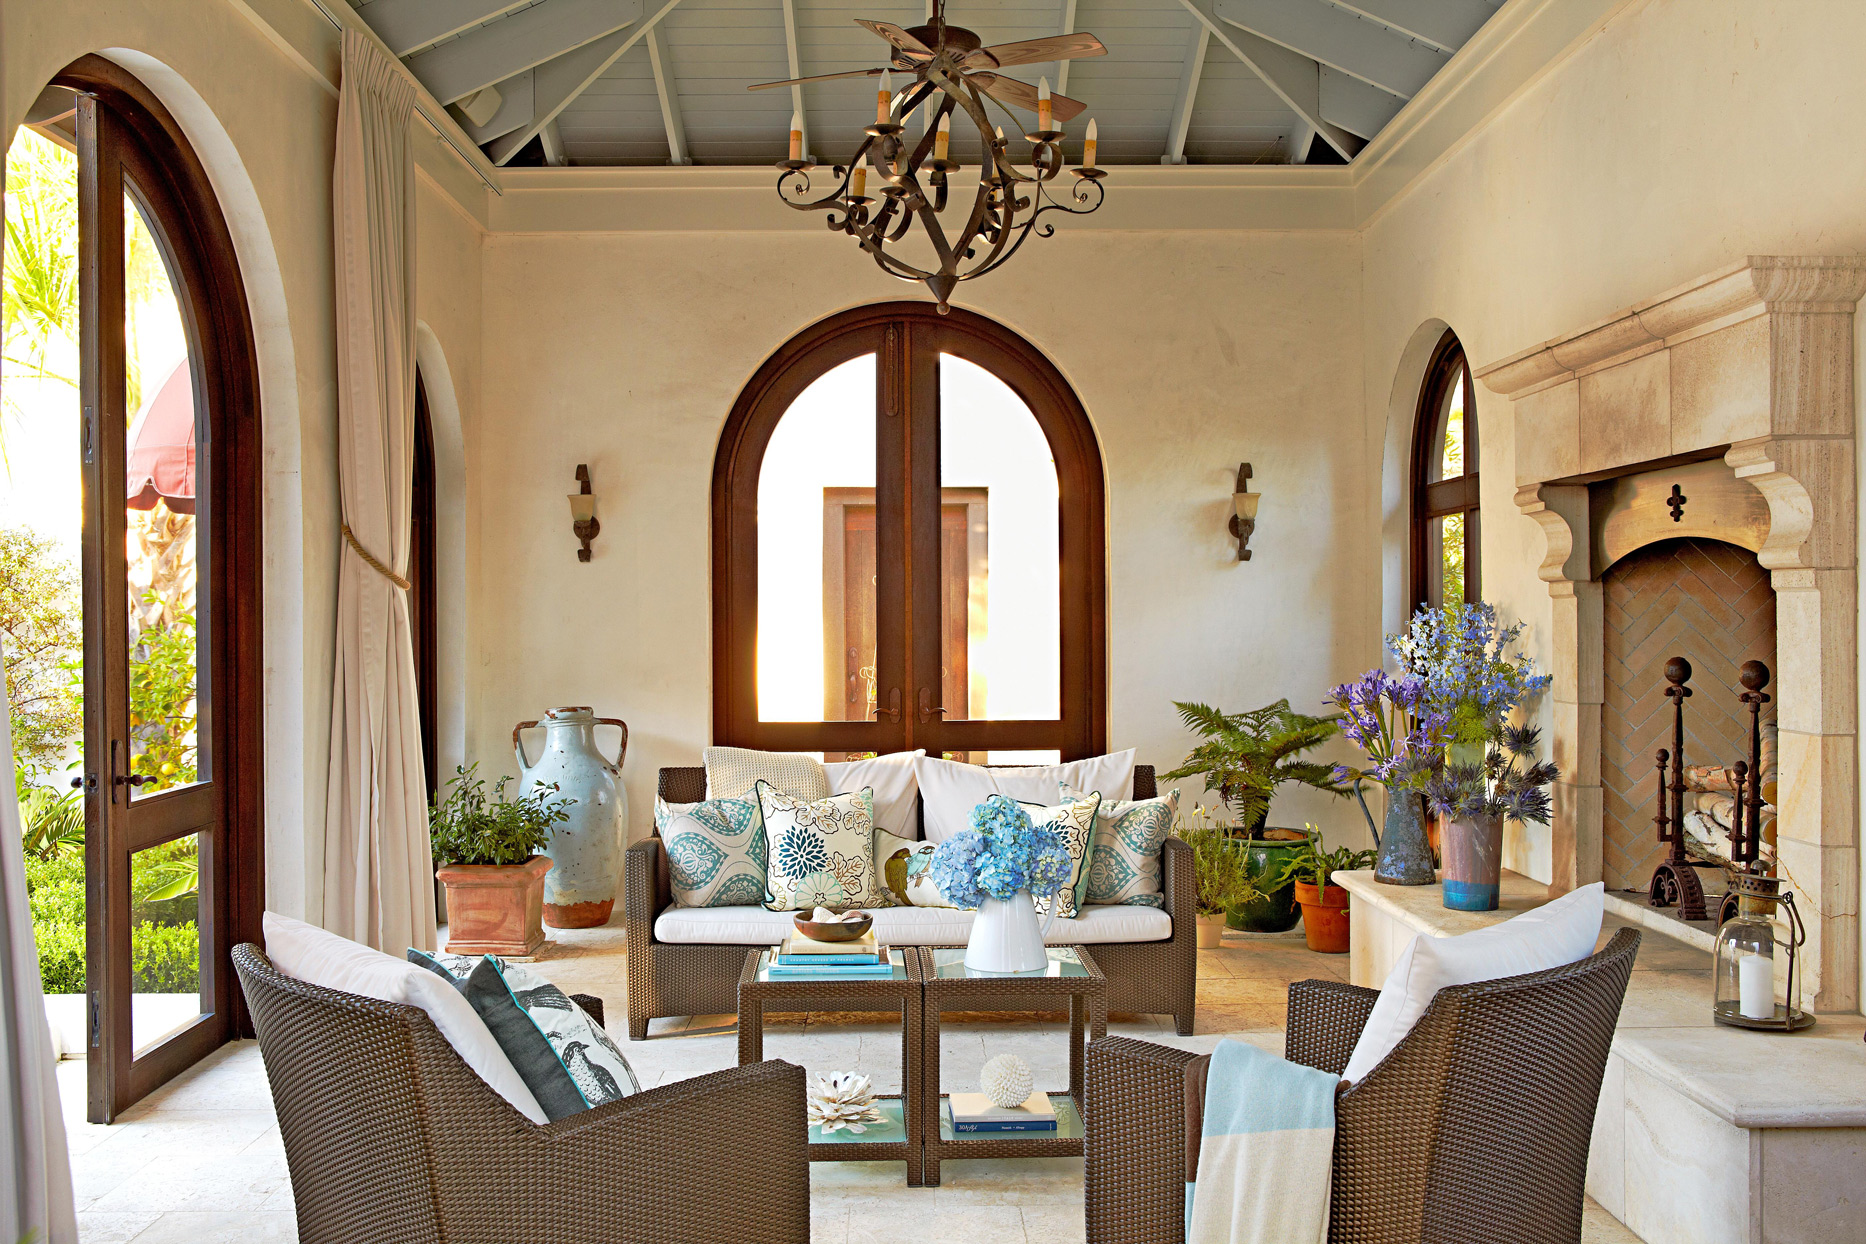 indoor porch with stone walls and high ceilings